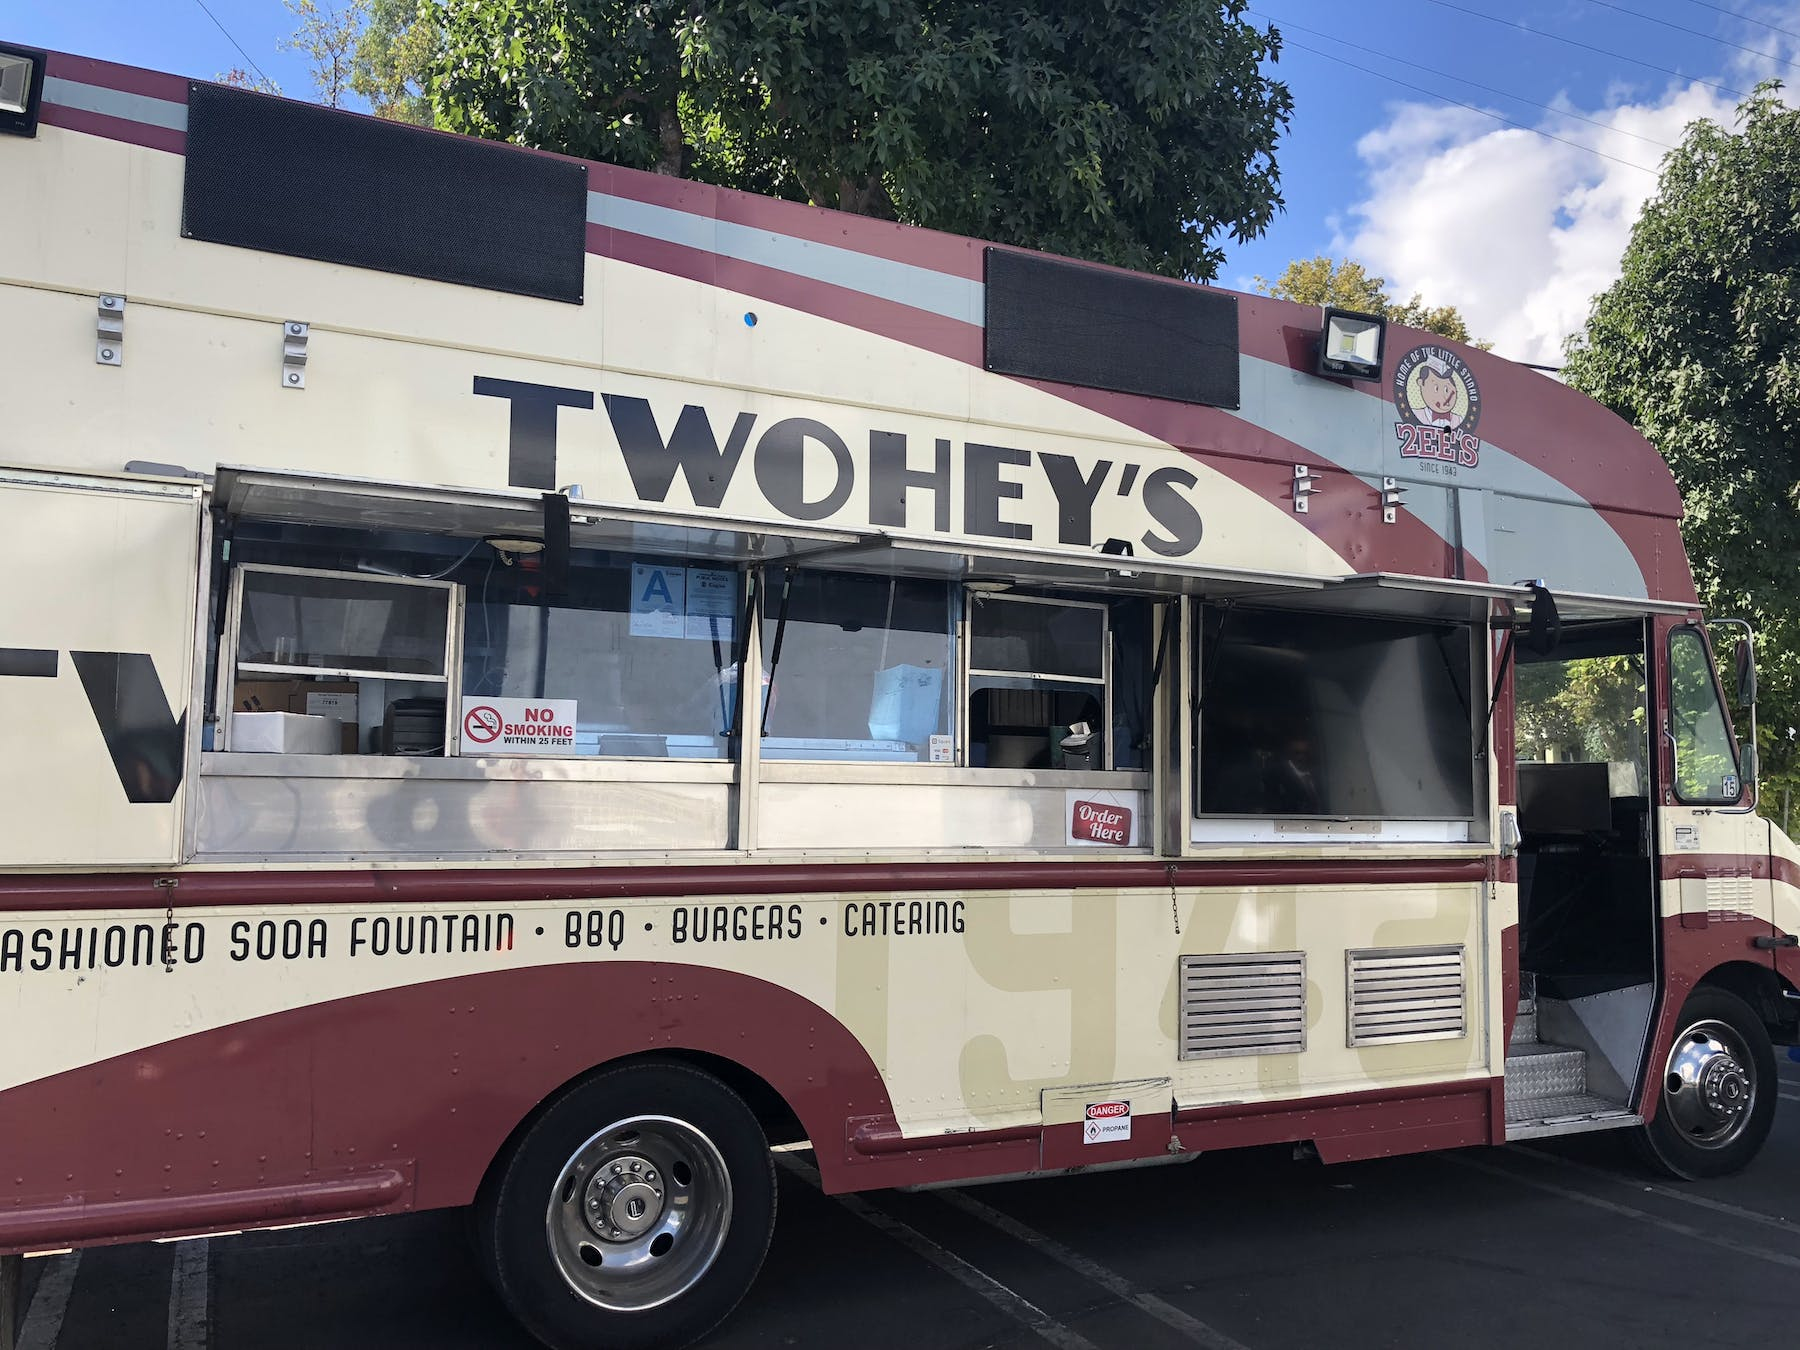 Twohey's Food Truck